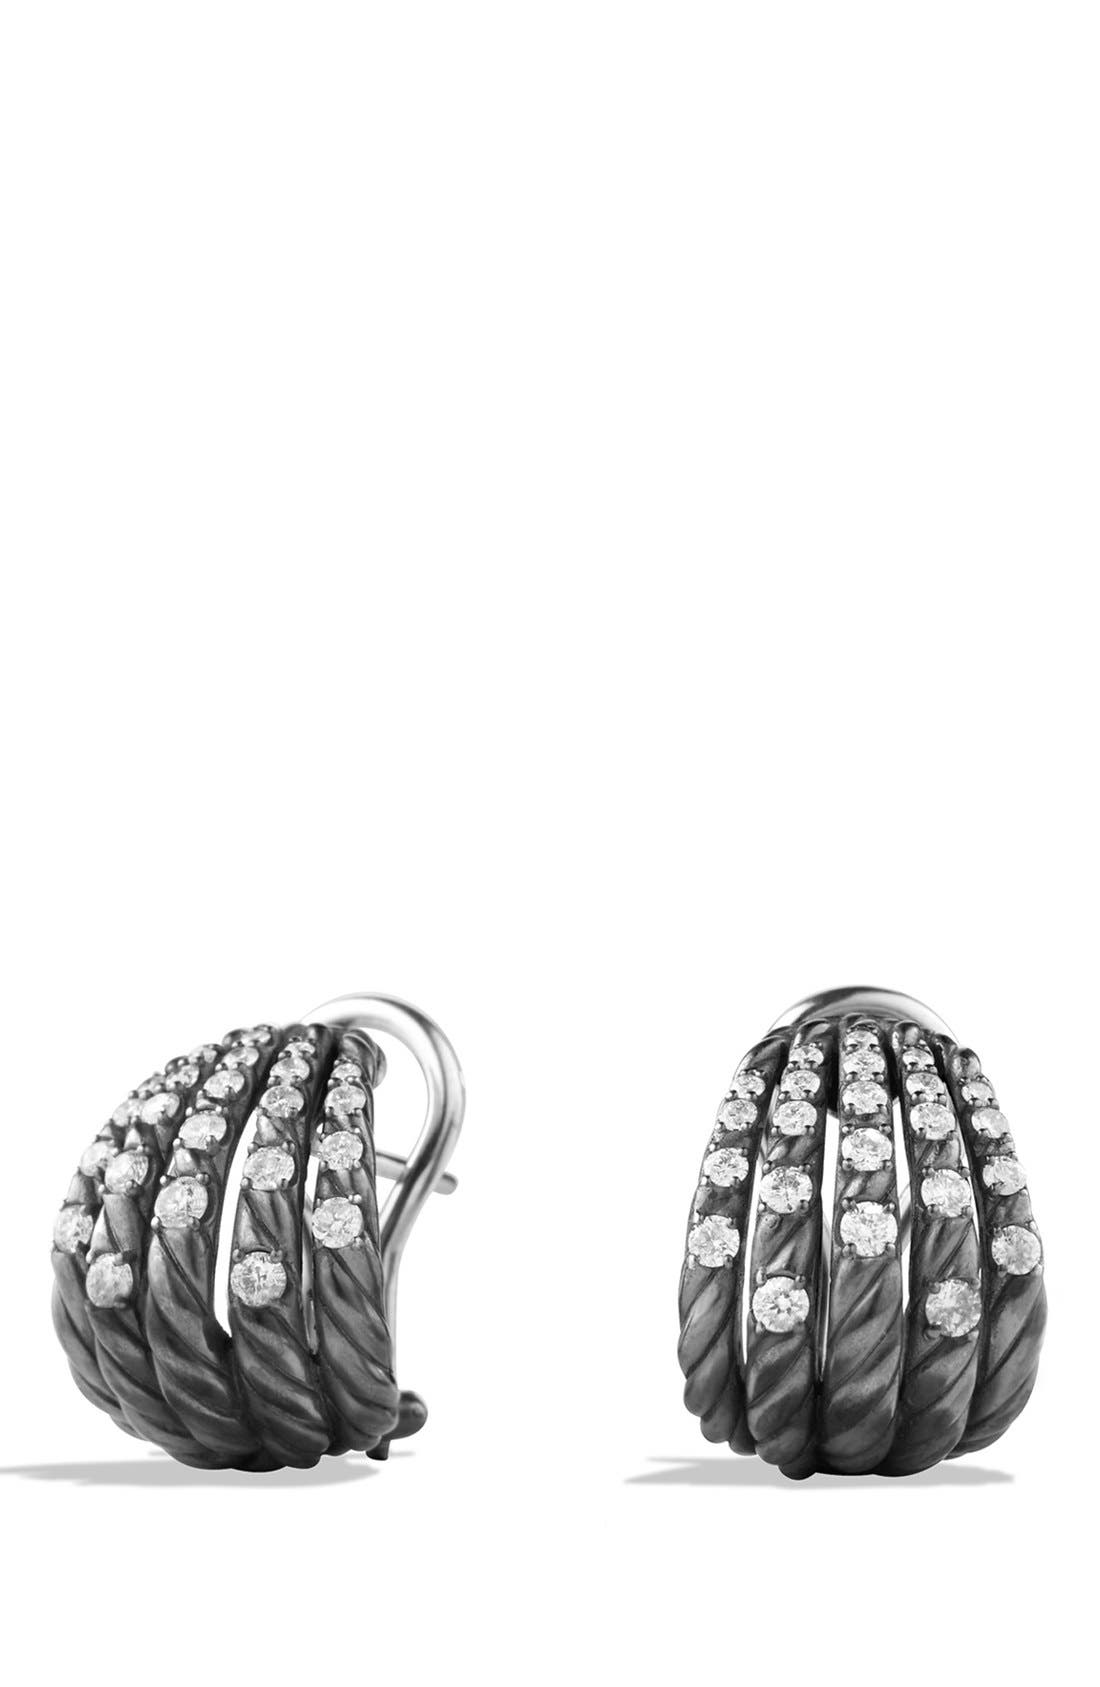 Alternate Image 1 Selected - David Yurman 'Tempo' Earrings with Diamonds